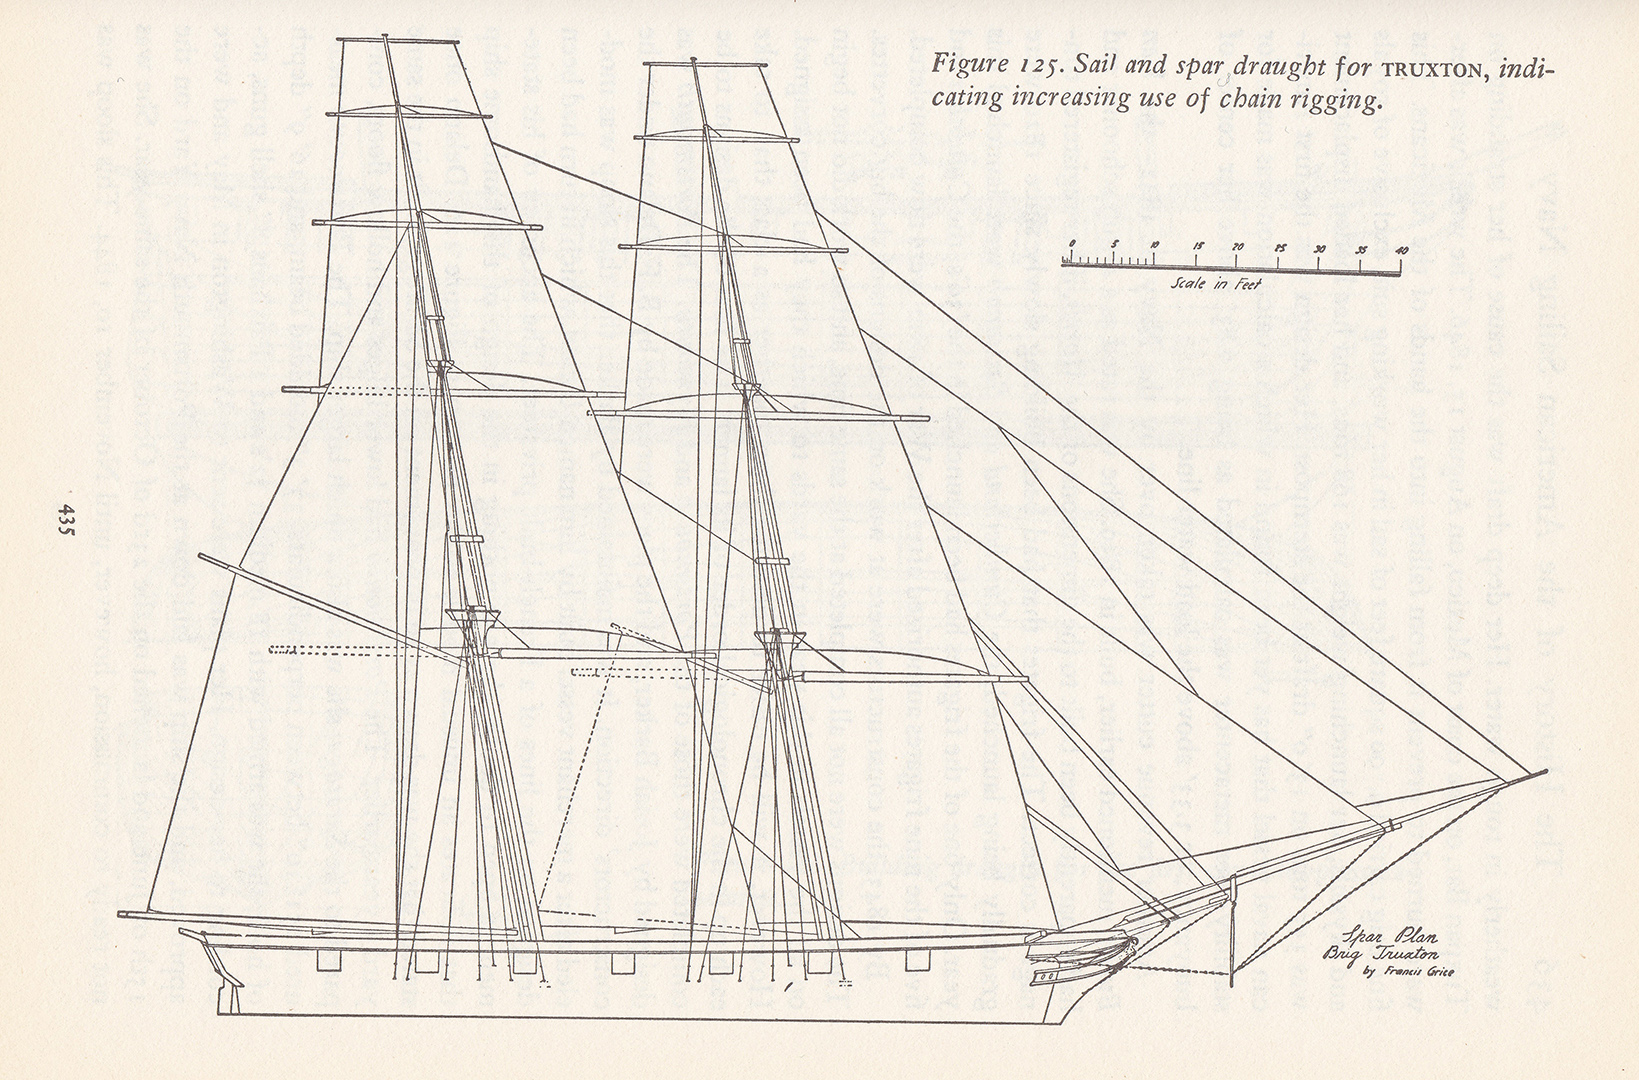 American sailing warships with no plans or records page 8 post 14867 0 21221400 1470751651thumbg pooptronica Choice Image